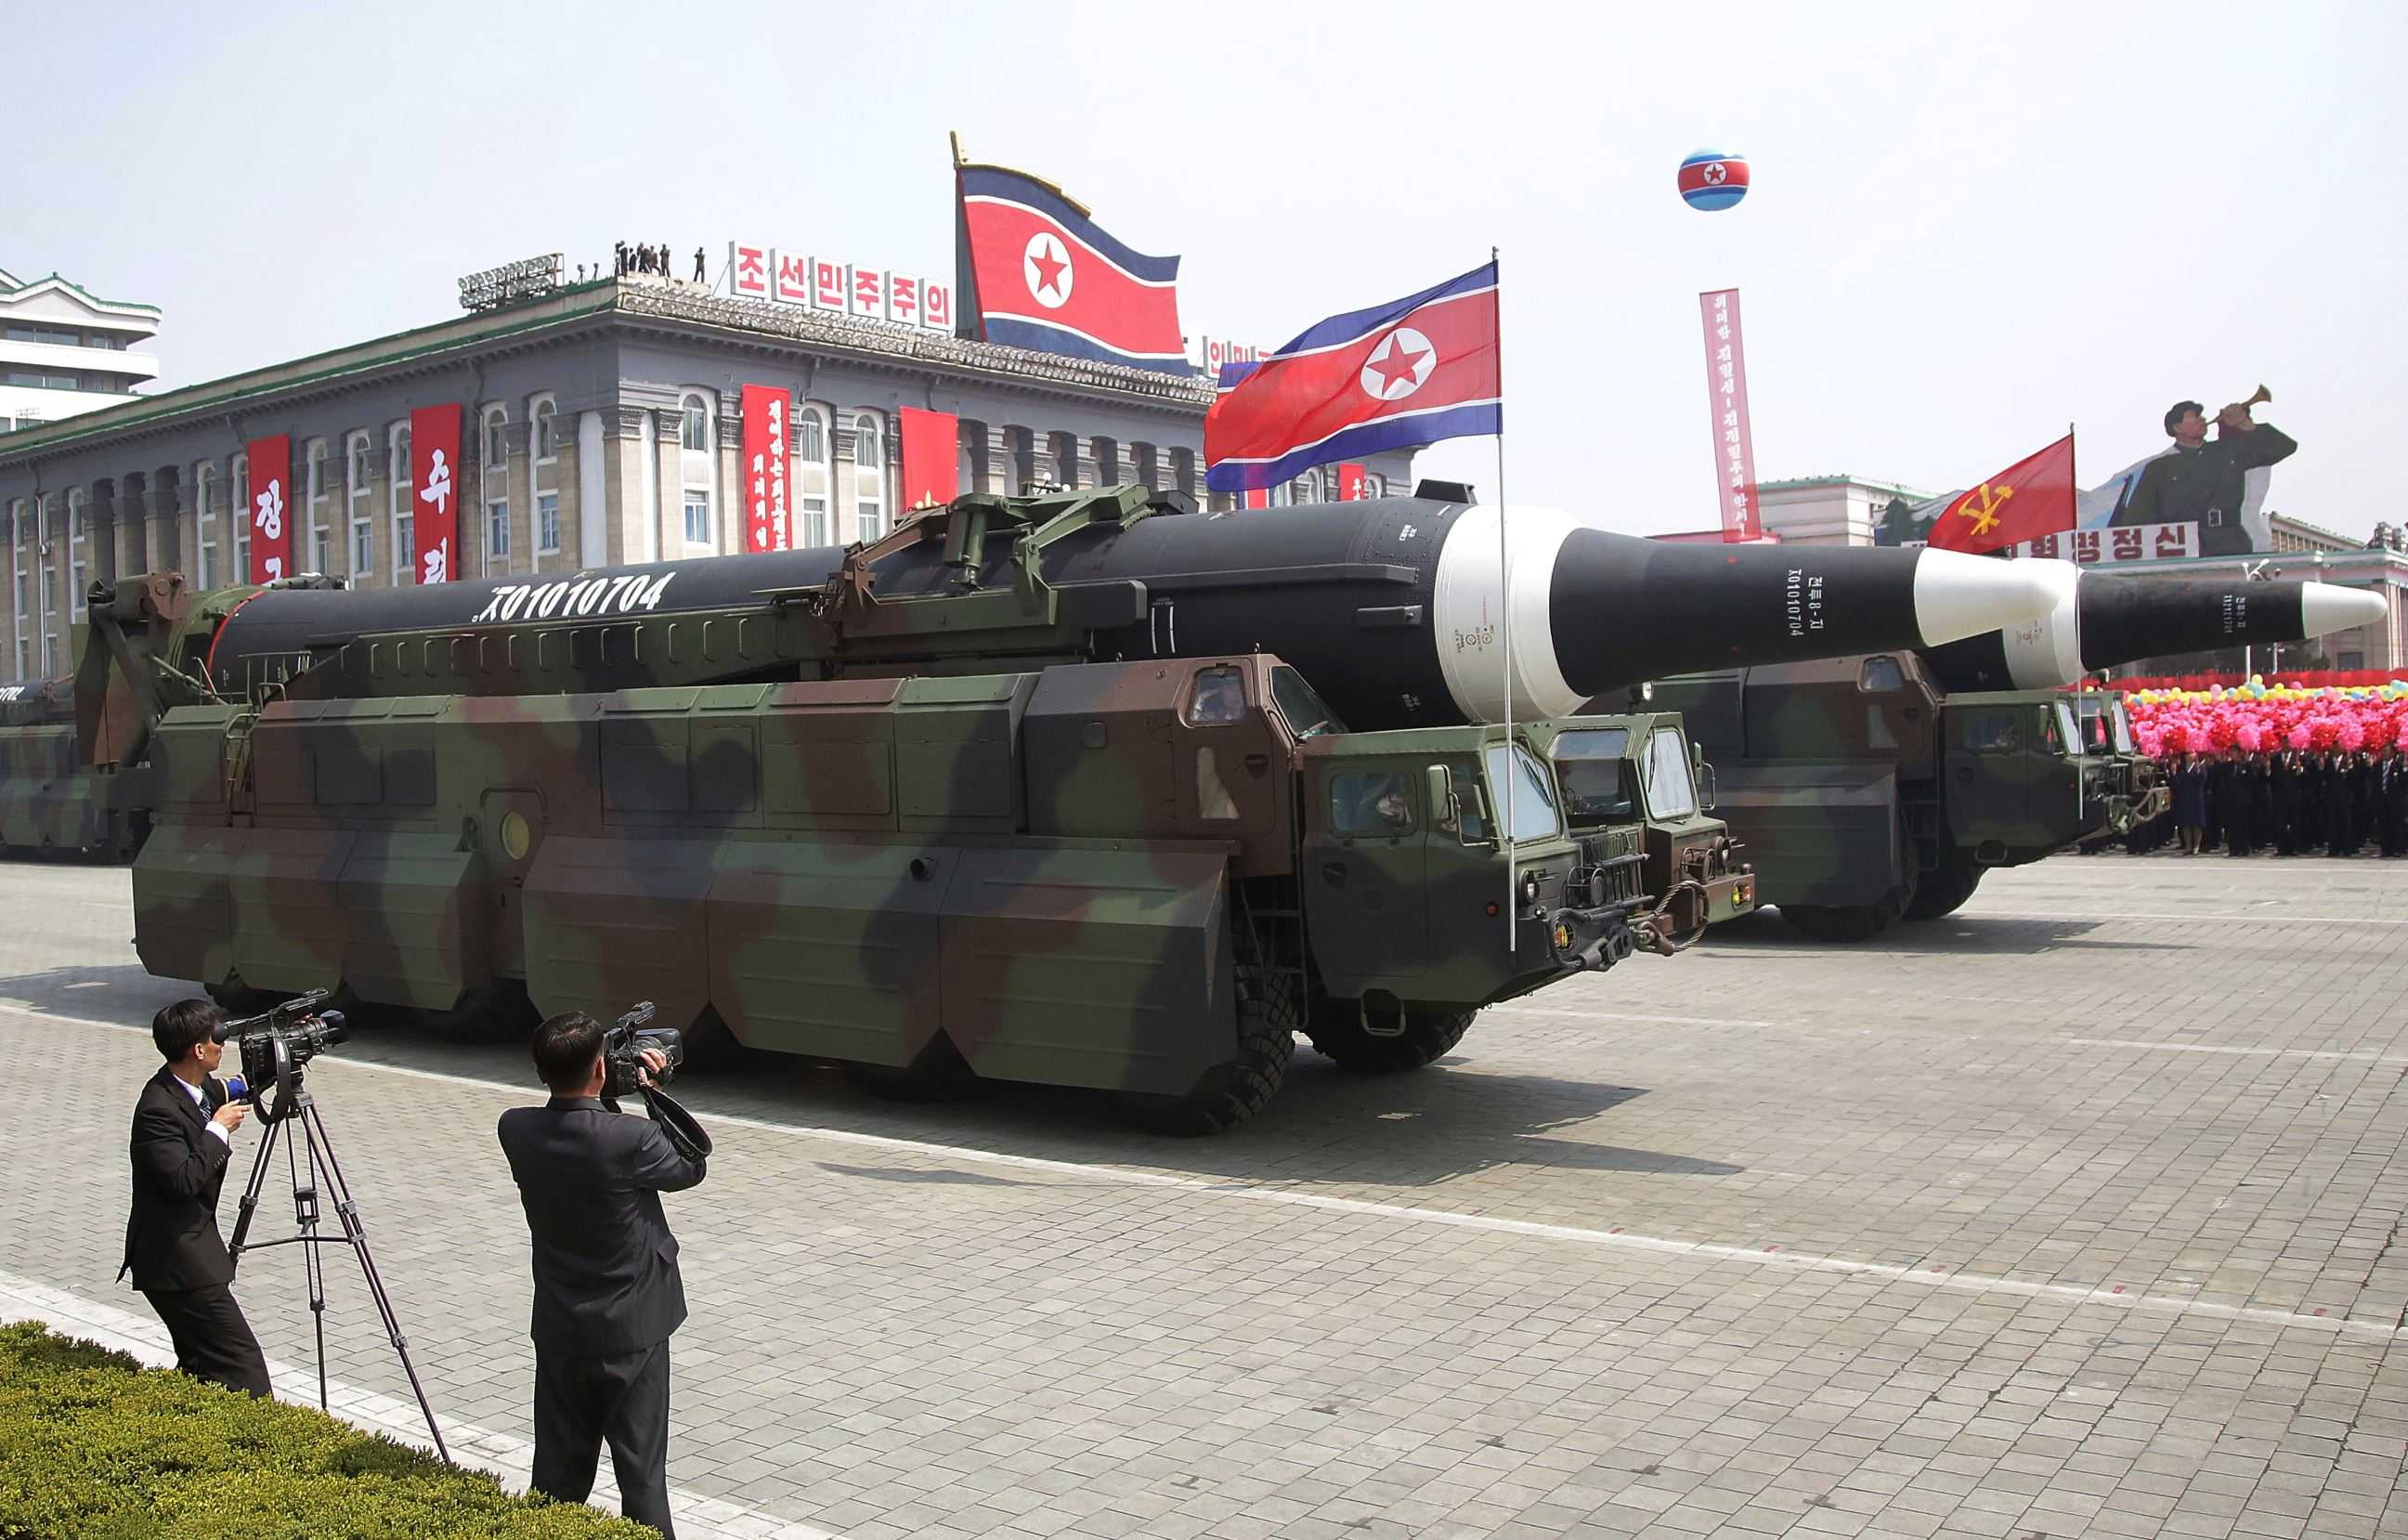 Slide 3 of 26: n what military experts say appears to be a North Korean KN-08 Intercontinental Ballistic Missile (ICMB) is paraded across Kim Il Sung Square during a military parade on Saturday, April 15, 2017, in Pyongyang, North Korea, to celebrate the 105th birth anniversary of Kim Il Sung, the country's late founder and grandfather of current ruler Kim Jong Un.